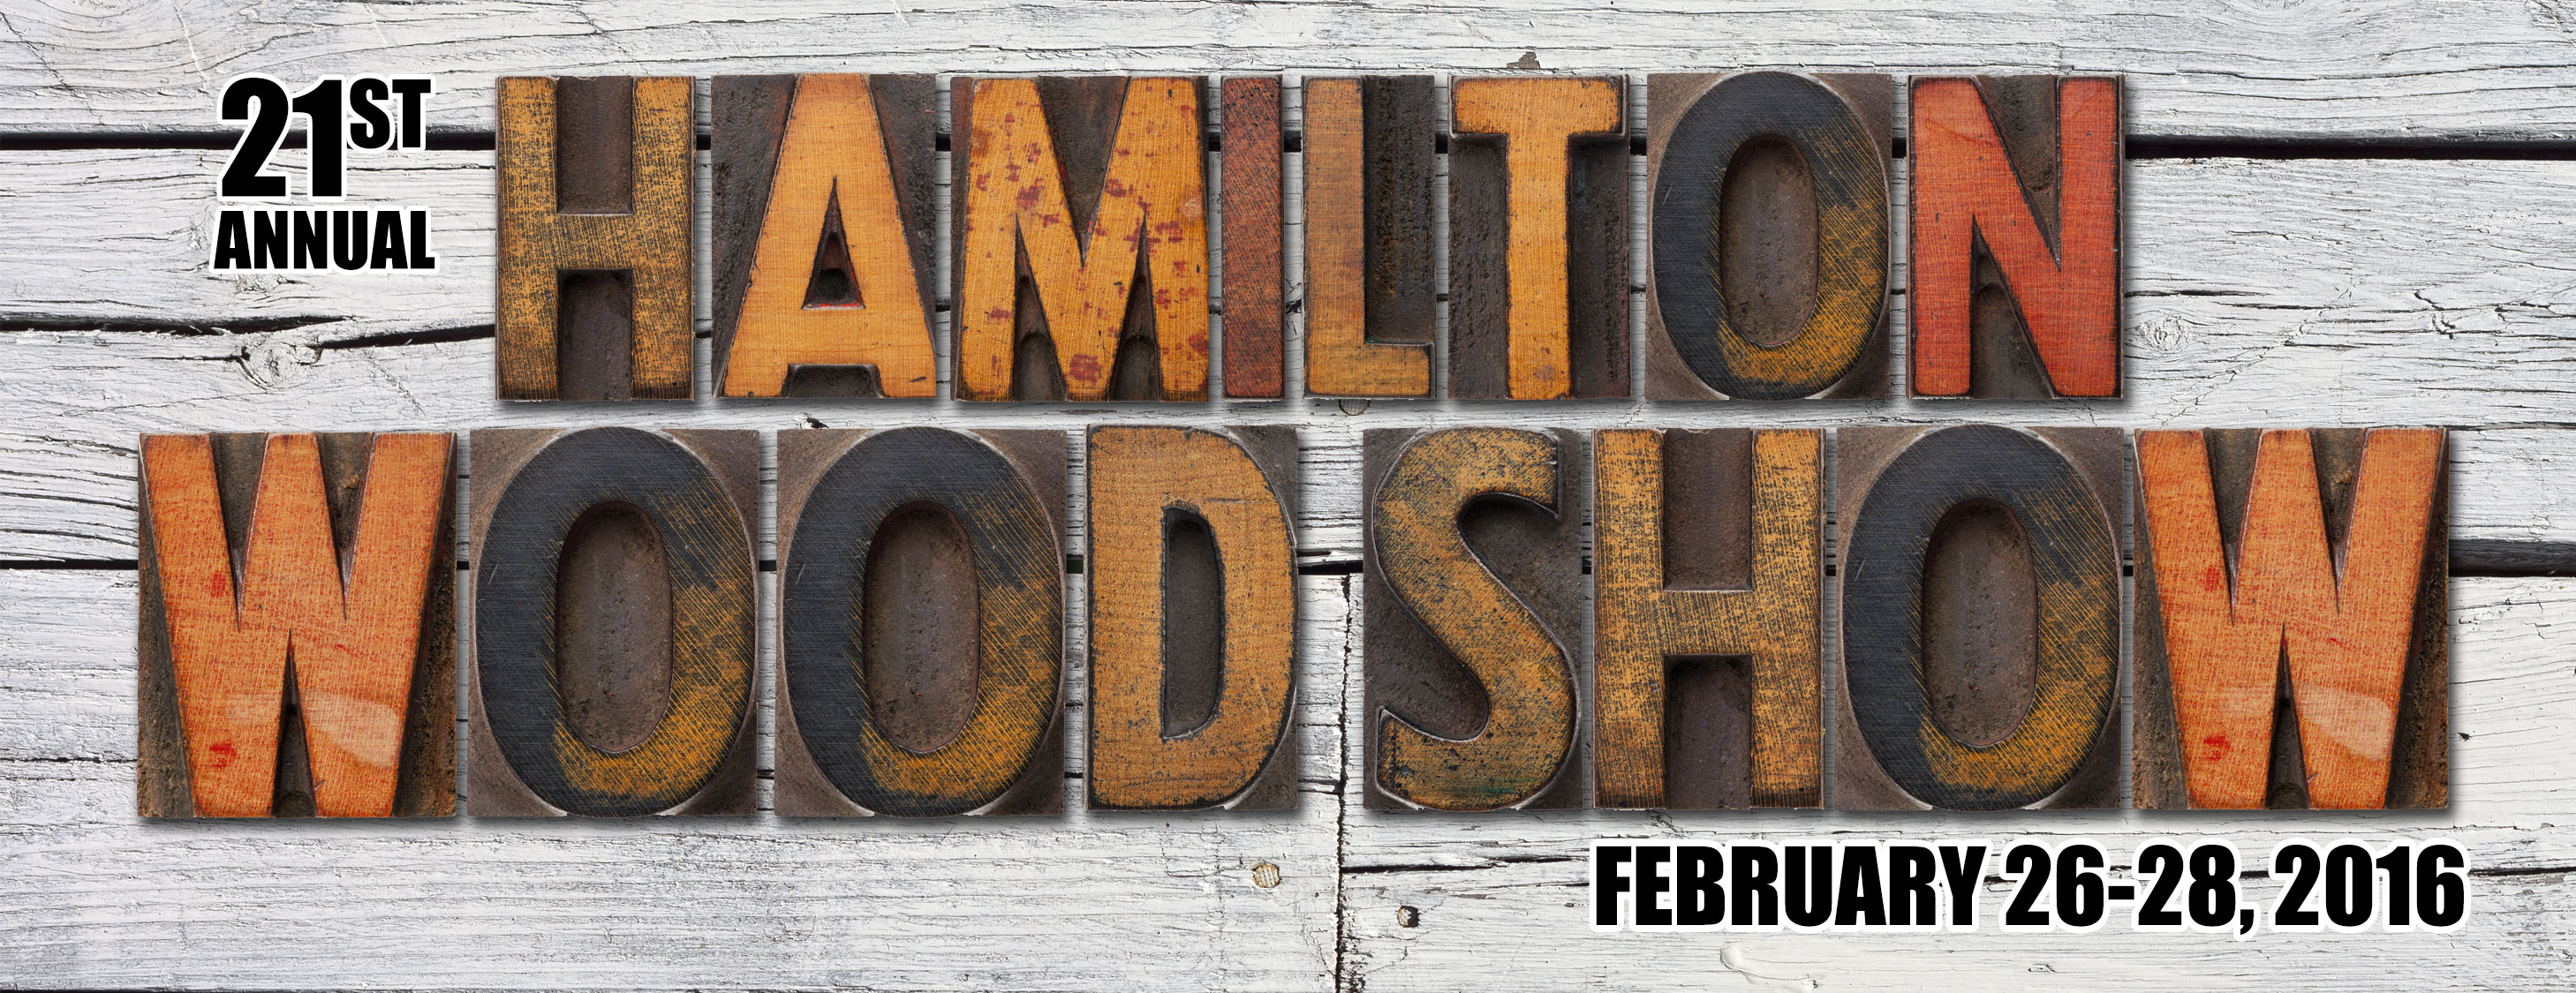 Poster for Hamilton Wood Show event